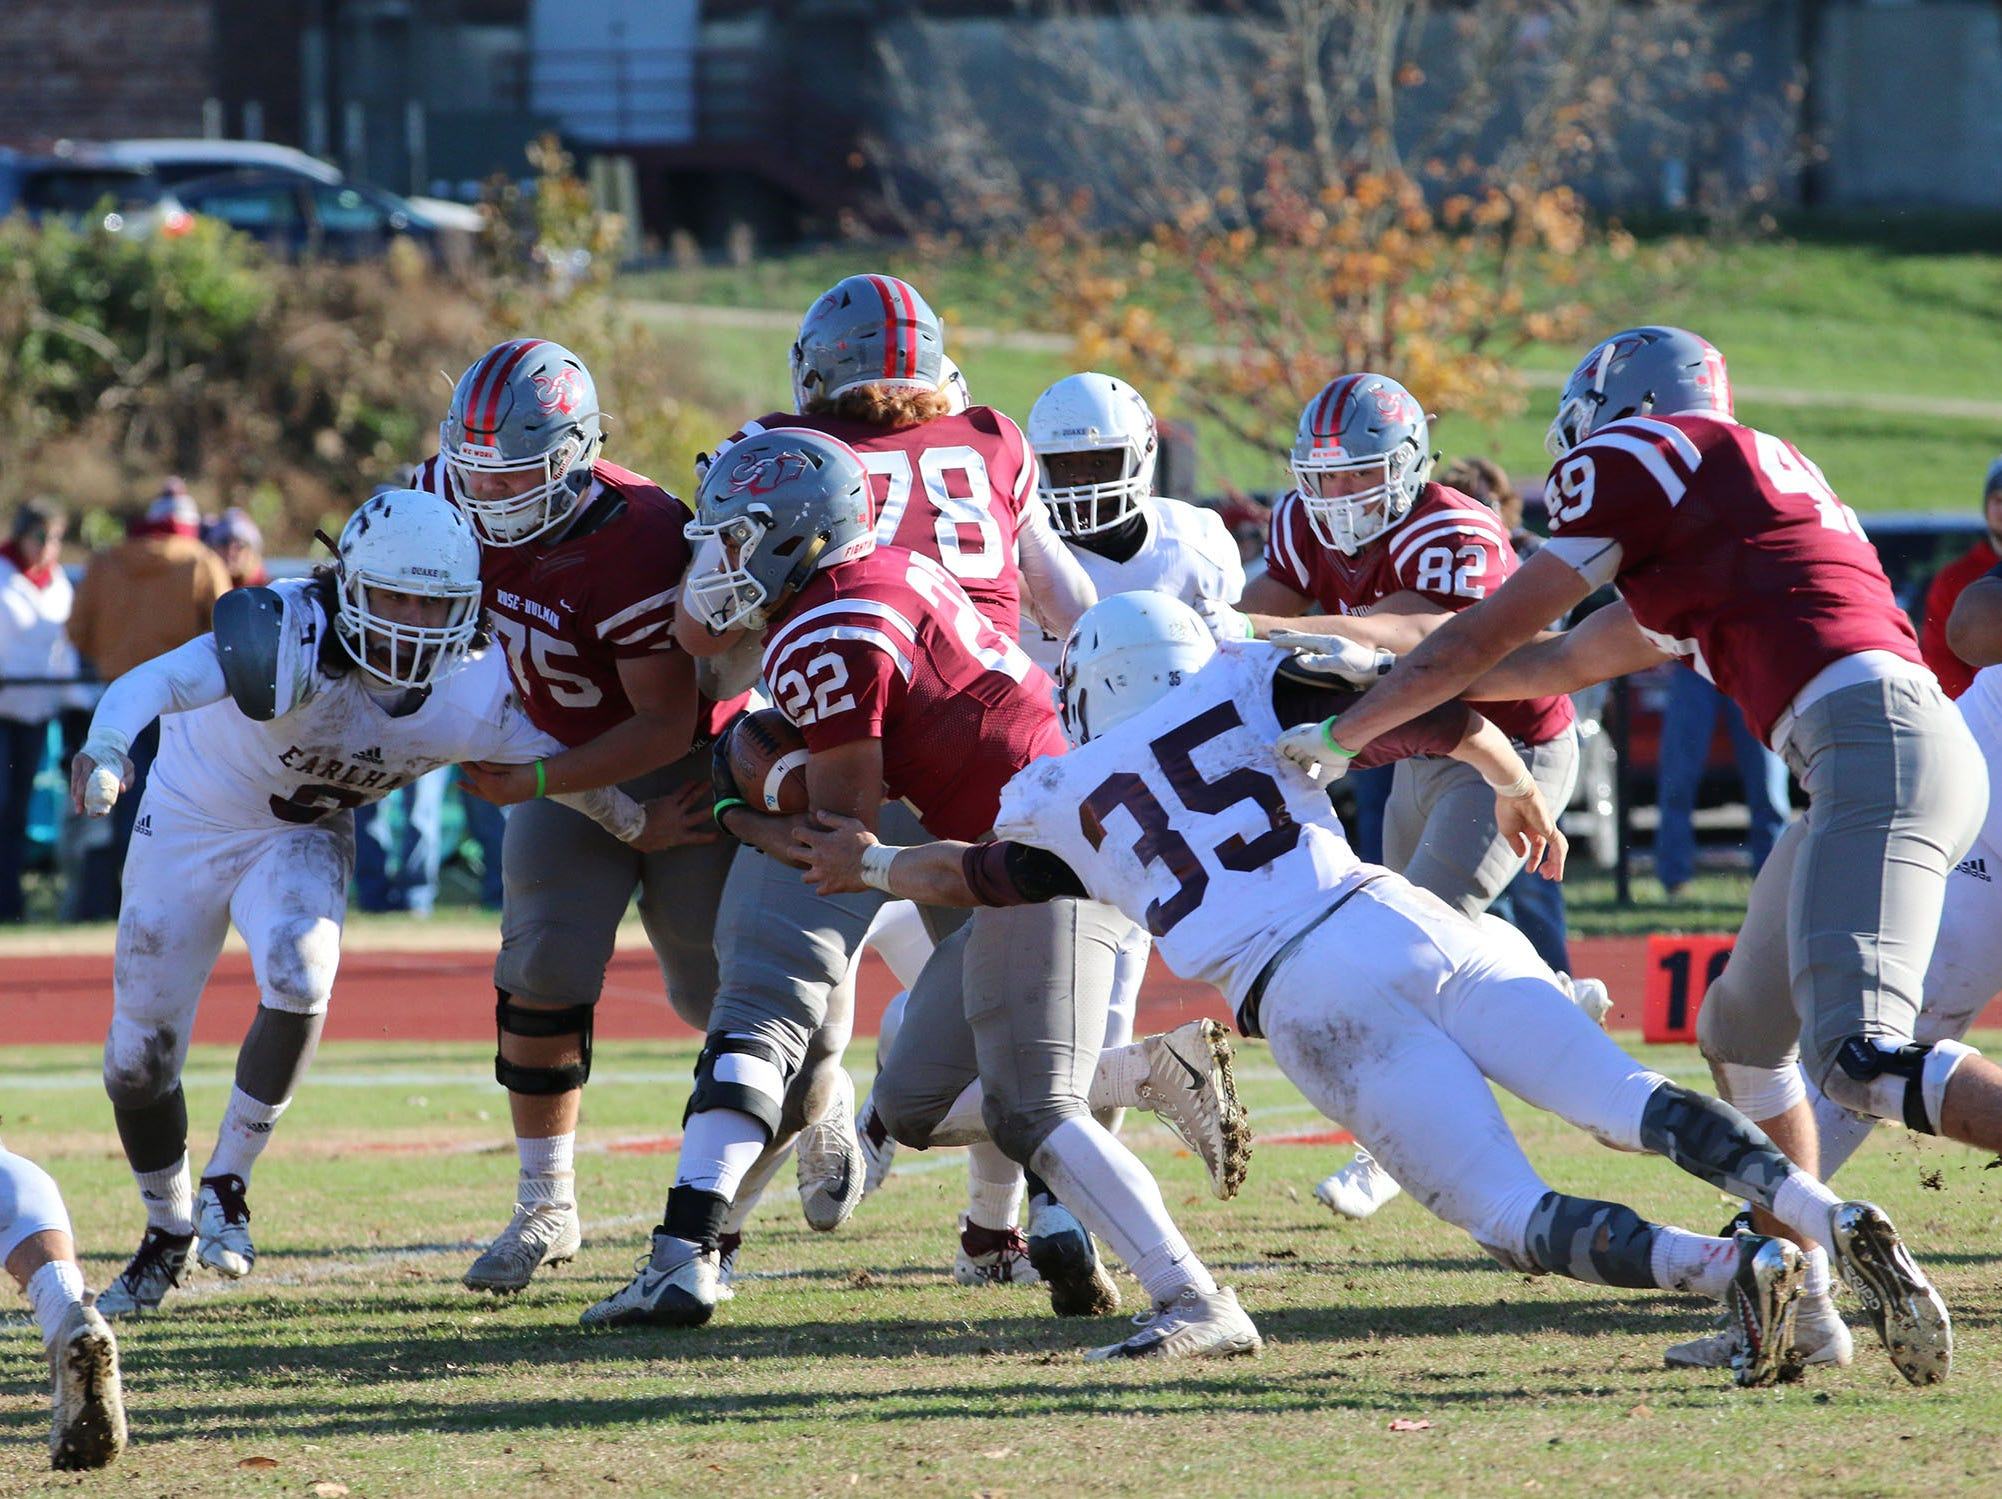 Kobe Walker, a 2015 Richmond High School graduate, led the Heartland Collegiate Athletic Conference with 115 total tackles as a junior on the Earlham College football team. He also had a quarterback sack, and recovered a pair of fumbles, earning All-HCAC second-team honors